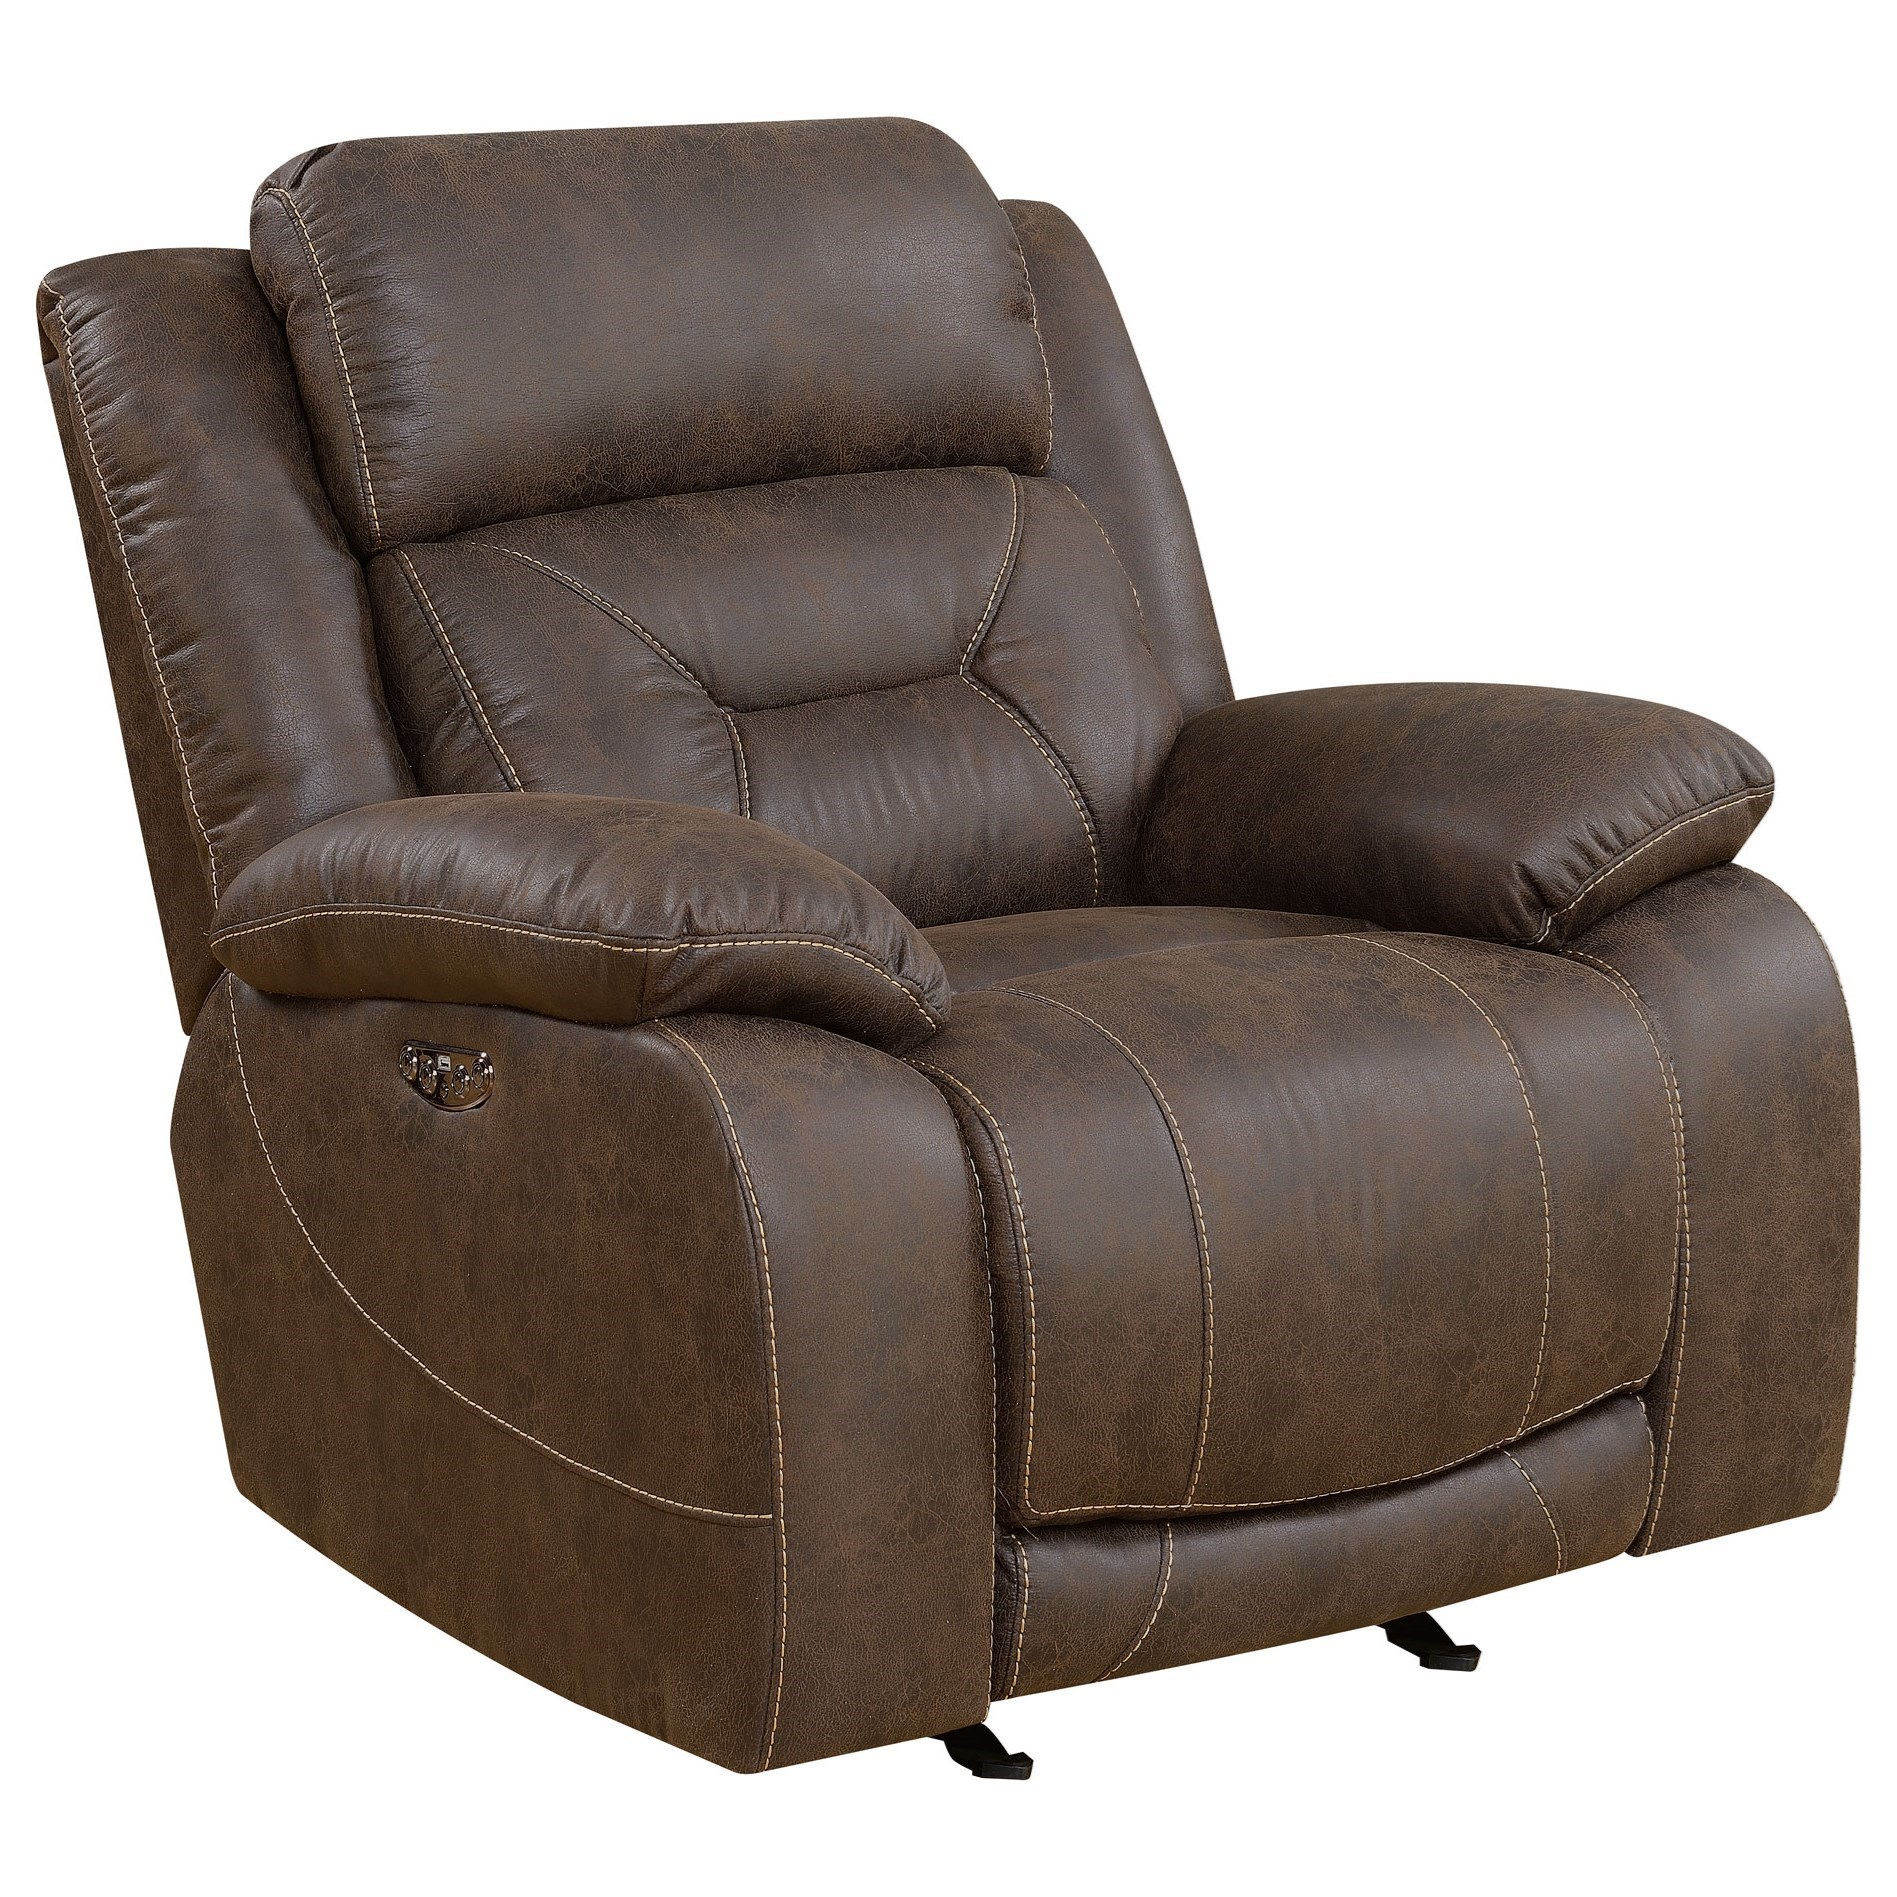 Aria Power Recliner by Star at EFO Furniture Outlet